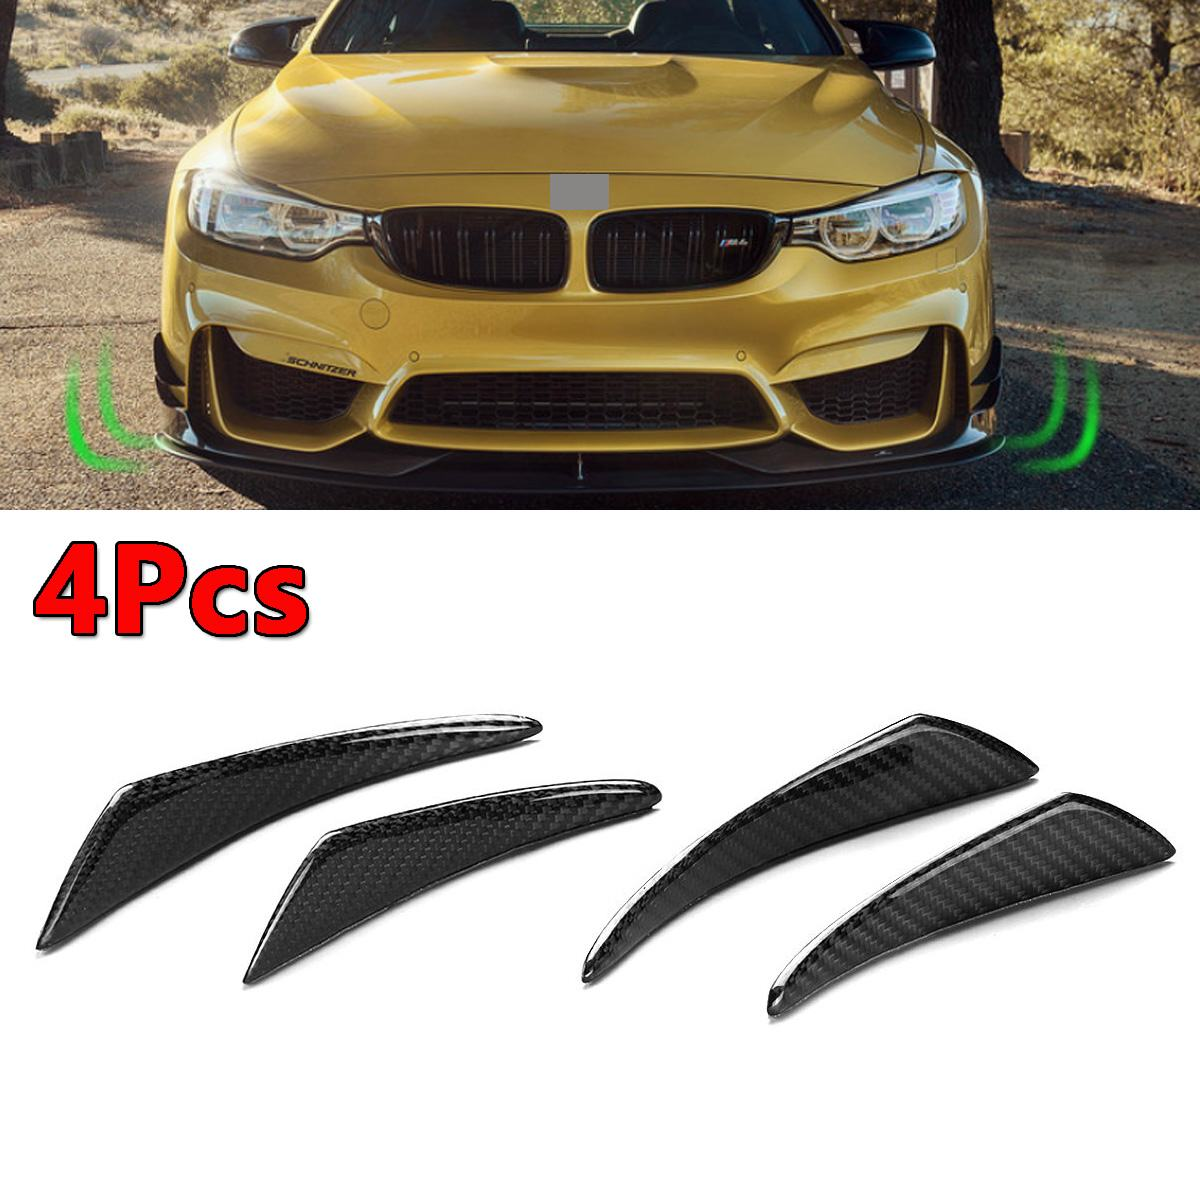 668 Jet Black FYRALIP Painted Factory Print Code Trunk Lip Wing Spoiler For 2000-2006 BMW 3-Series E46 Convertible 2001-2006 E46 M3 Convertible Fast Delivery Easy Installation Perfect Fit